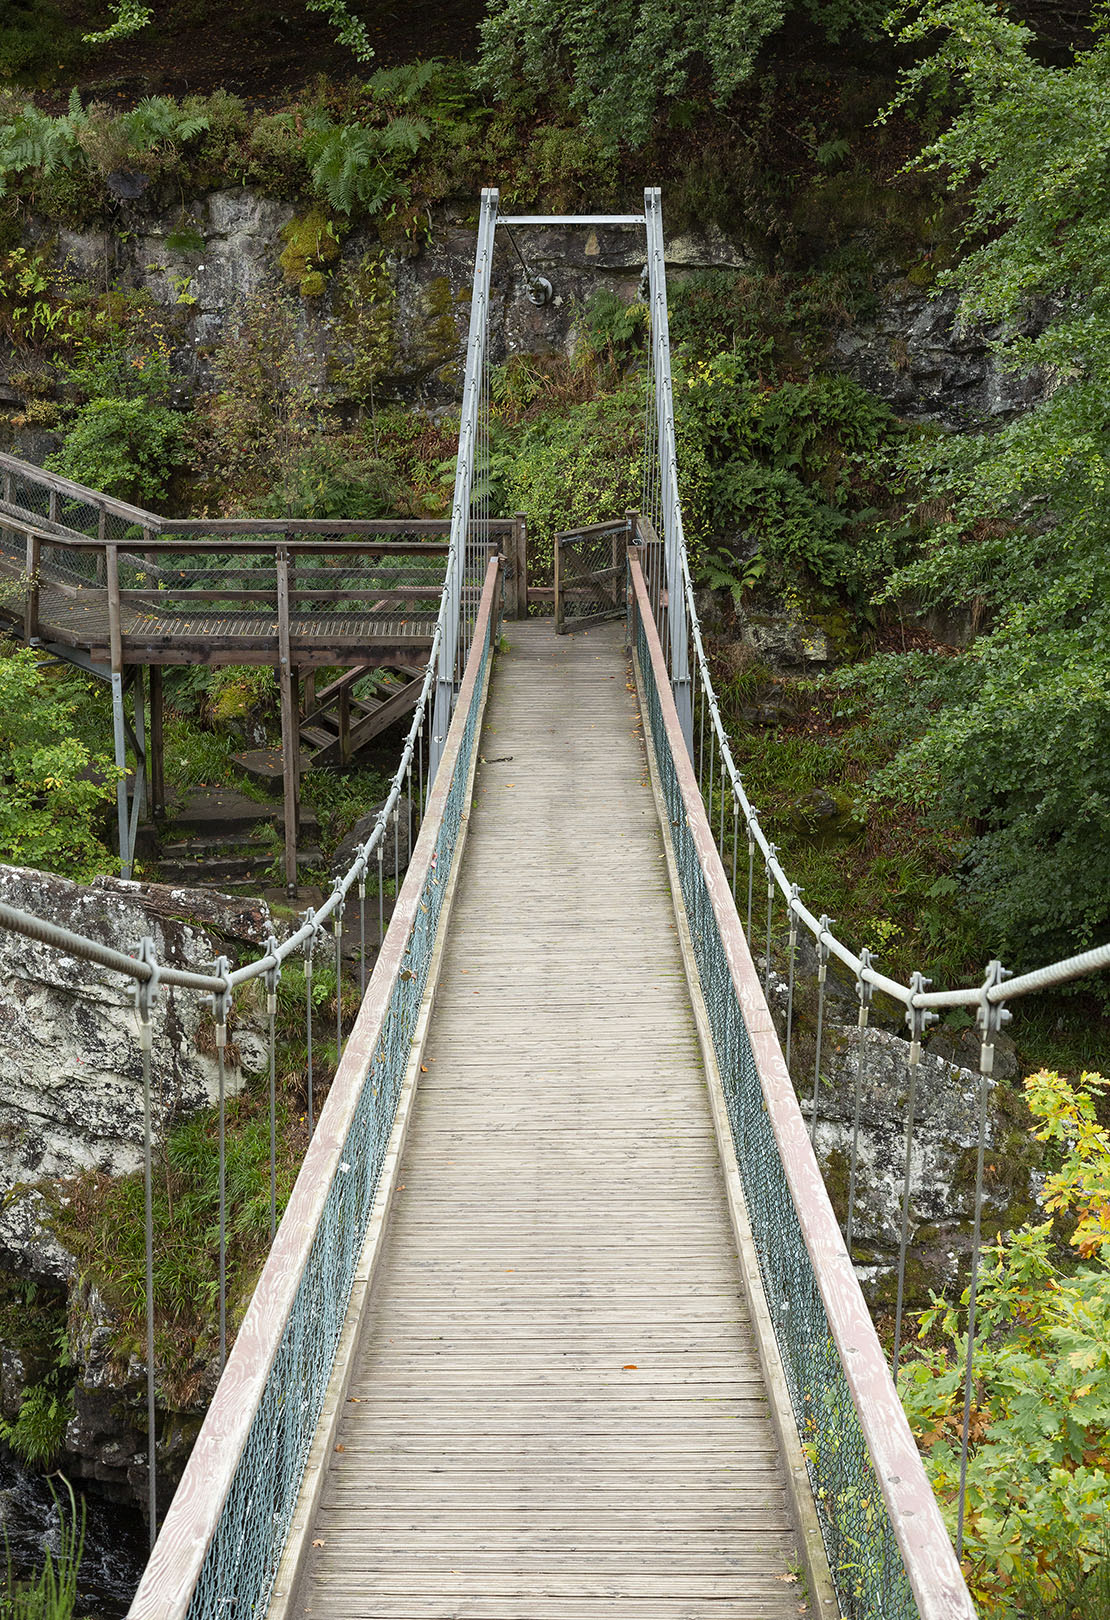 Another view directly down the suspension bridge.